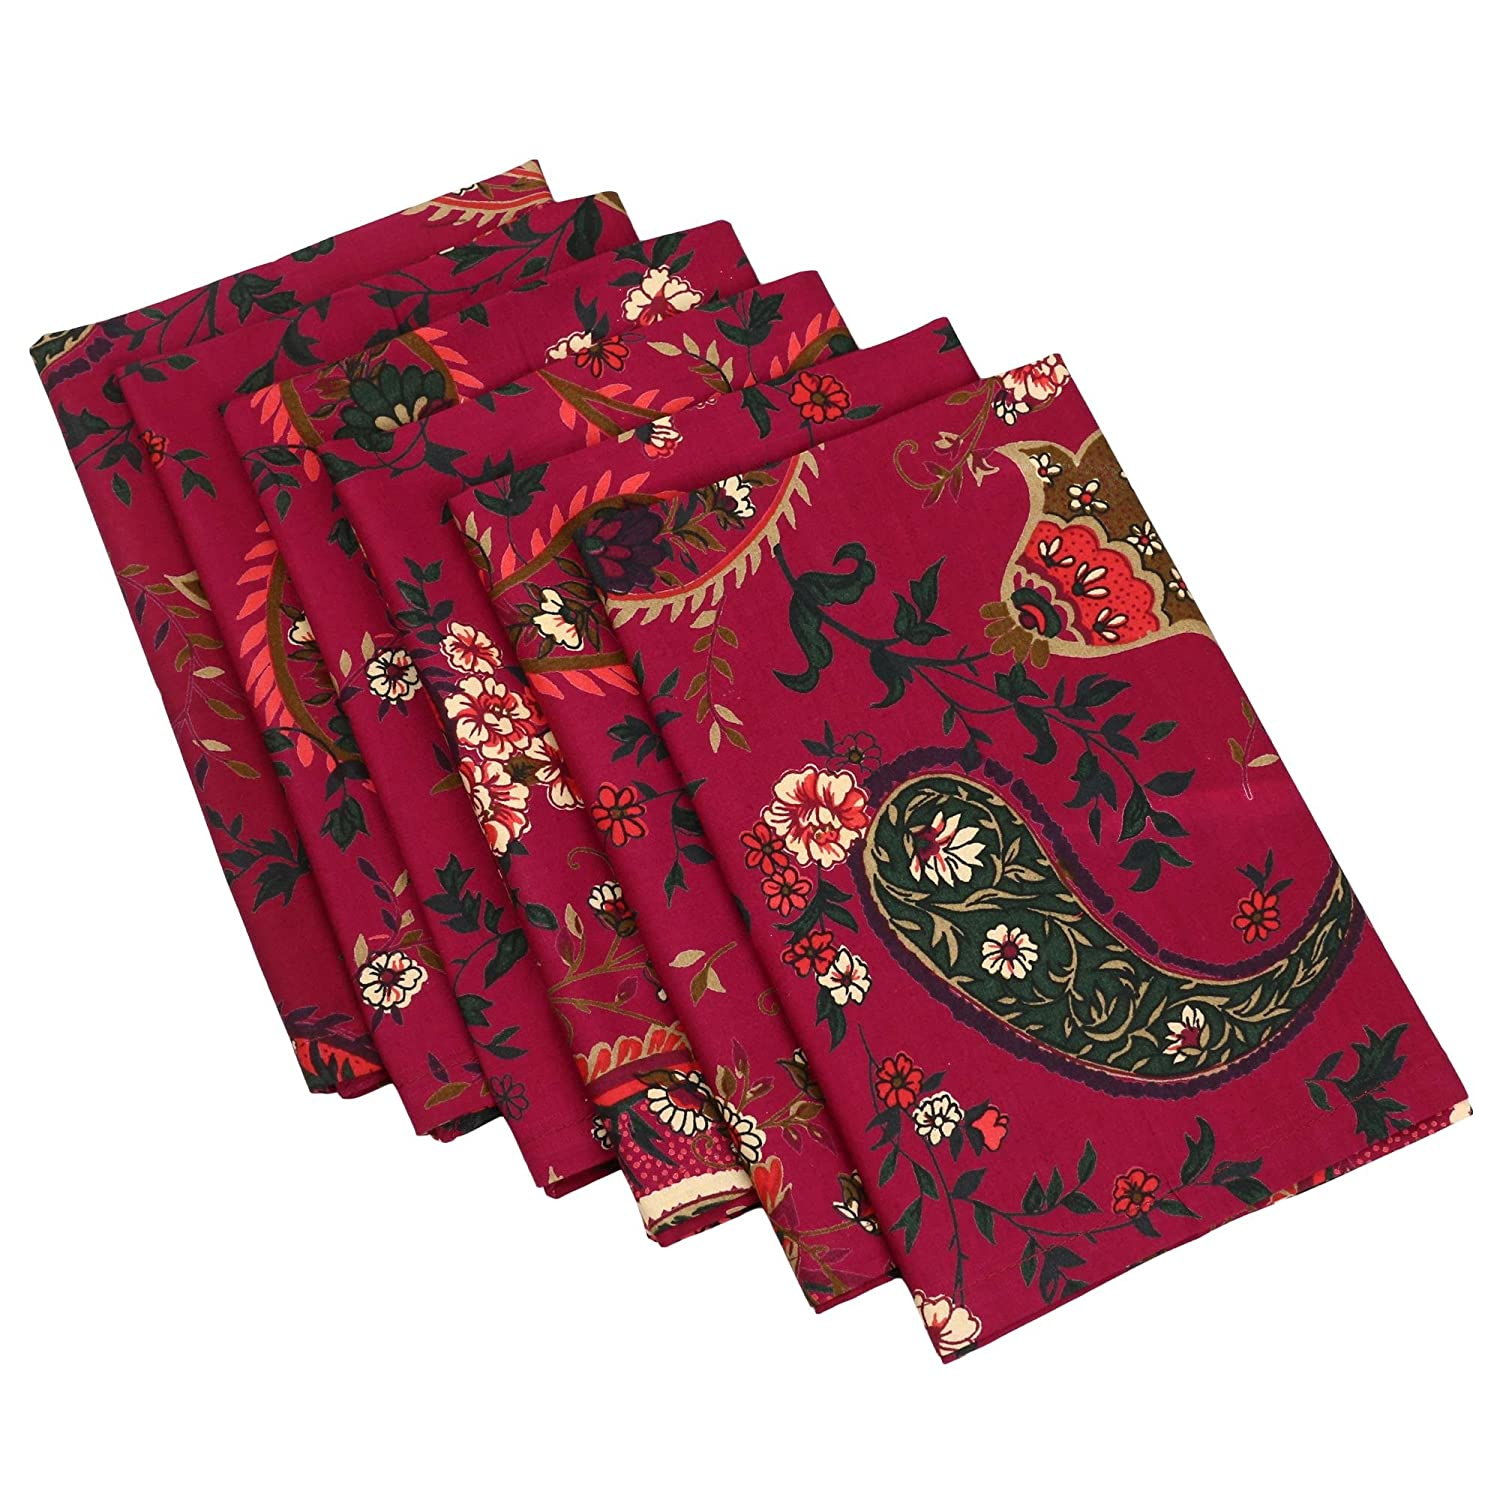 Printed Cotton 20x20 Inches Napkins Set Of 6 Indian Table Decor 200TC by ShalinIndia